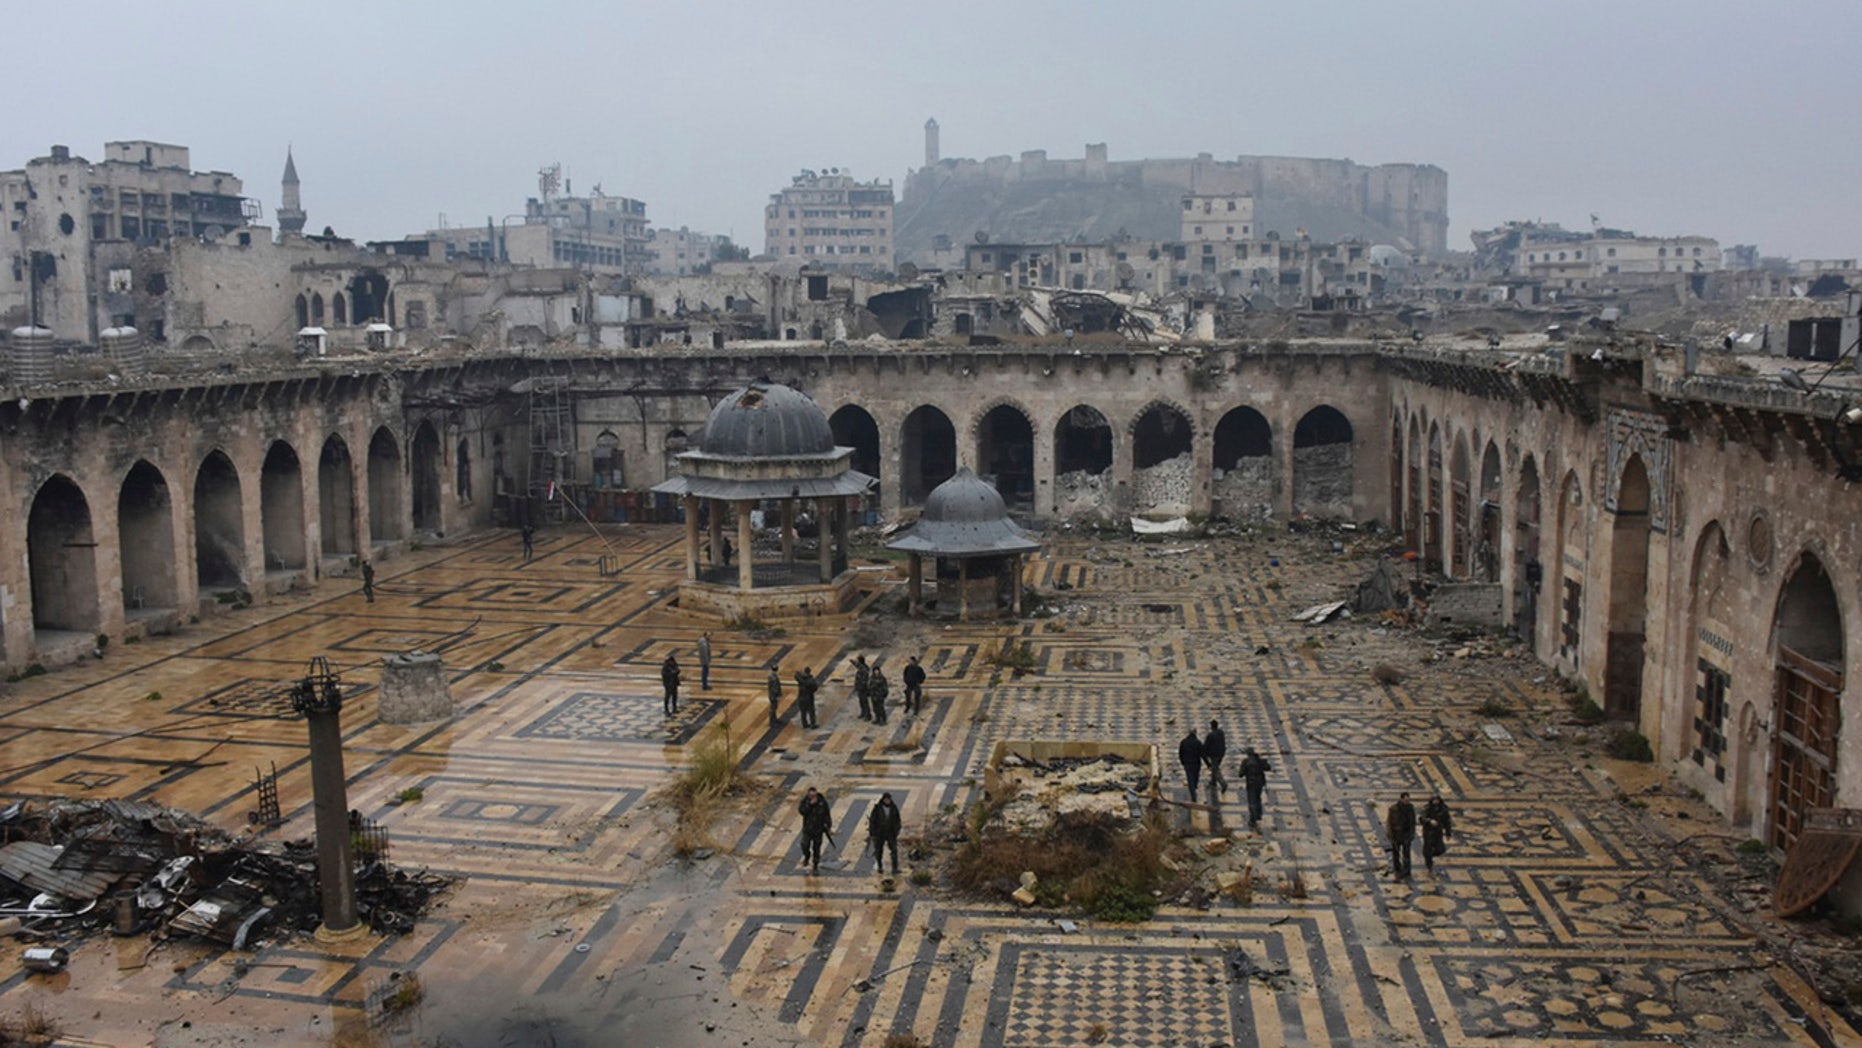 This photo released by the Syrian official news agency SANA, shows Syrian troops and pro-government gunmen marching walk inside the destroyed Grand Umayyad mosque in the old city of Aleppo, Syria, Tuesday, Dec. 13, 2016.